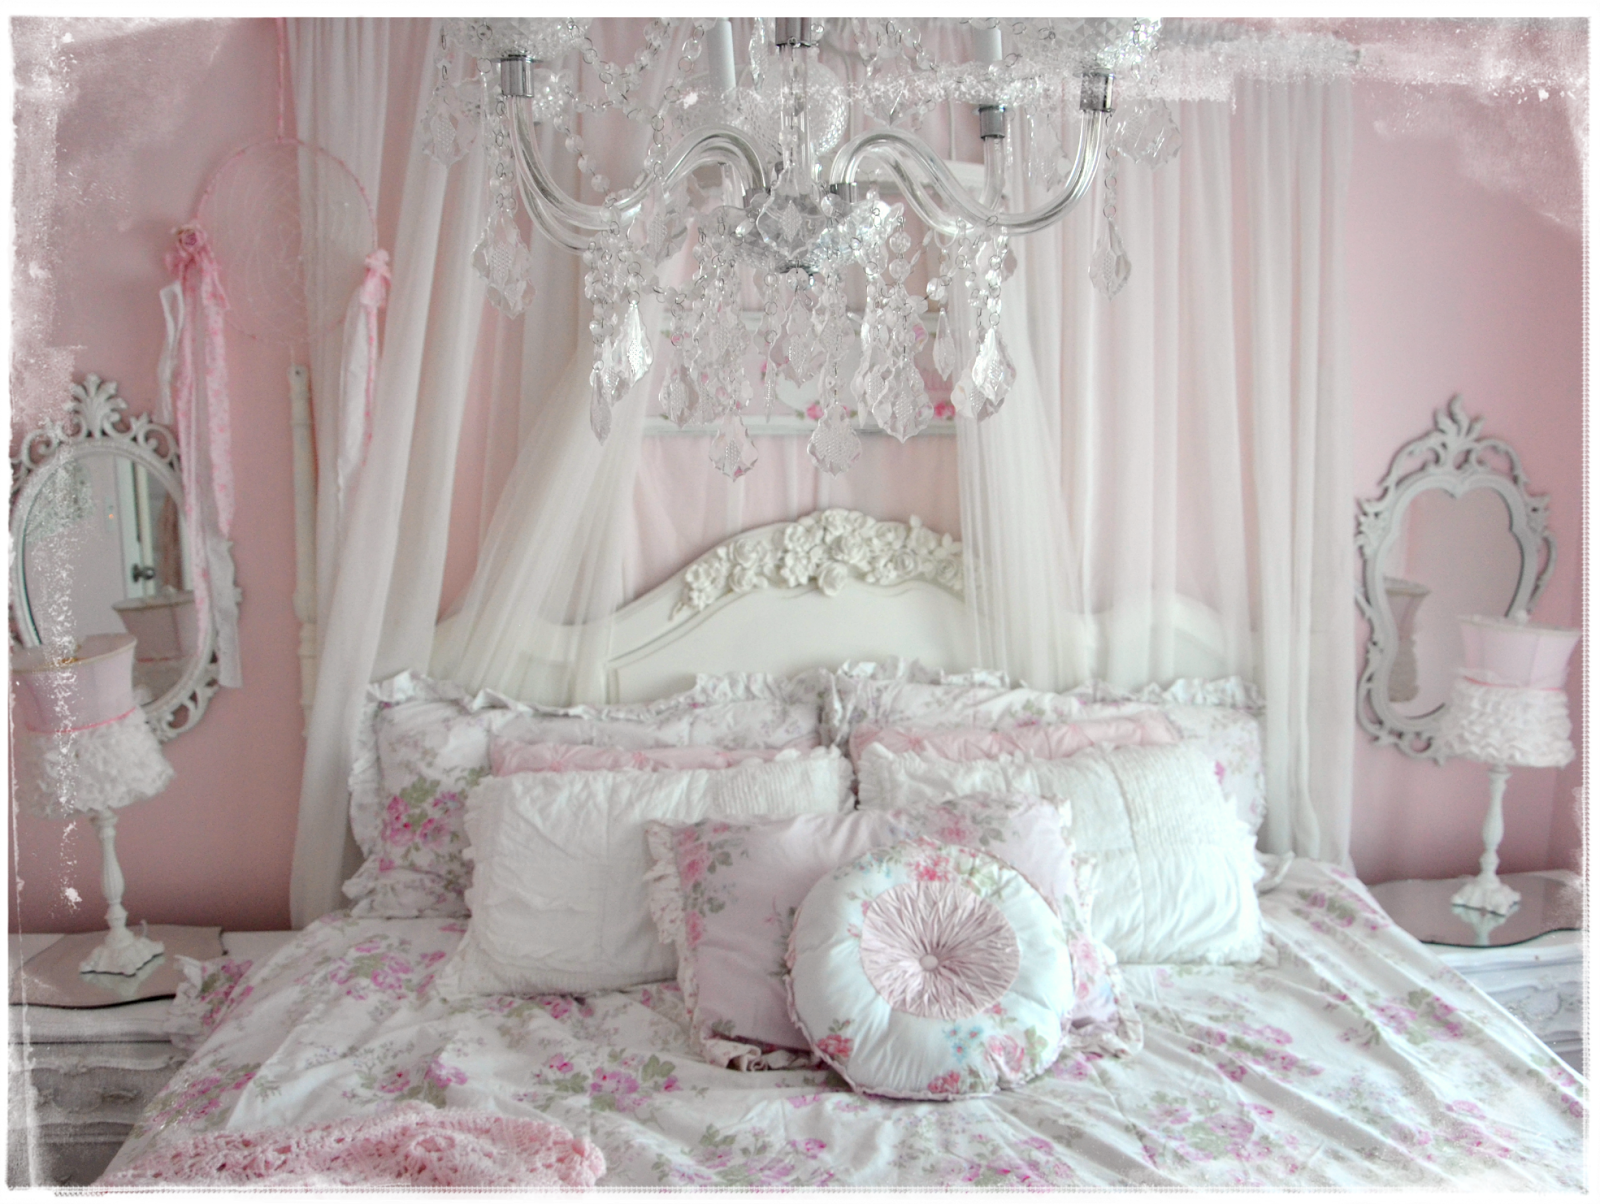 Not so shabby shabby chic new simply shabby chic bedding for Shabby chic bedroom designs